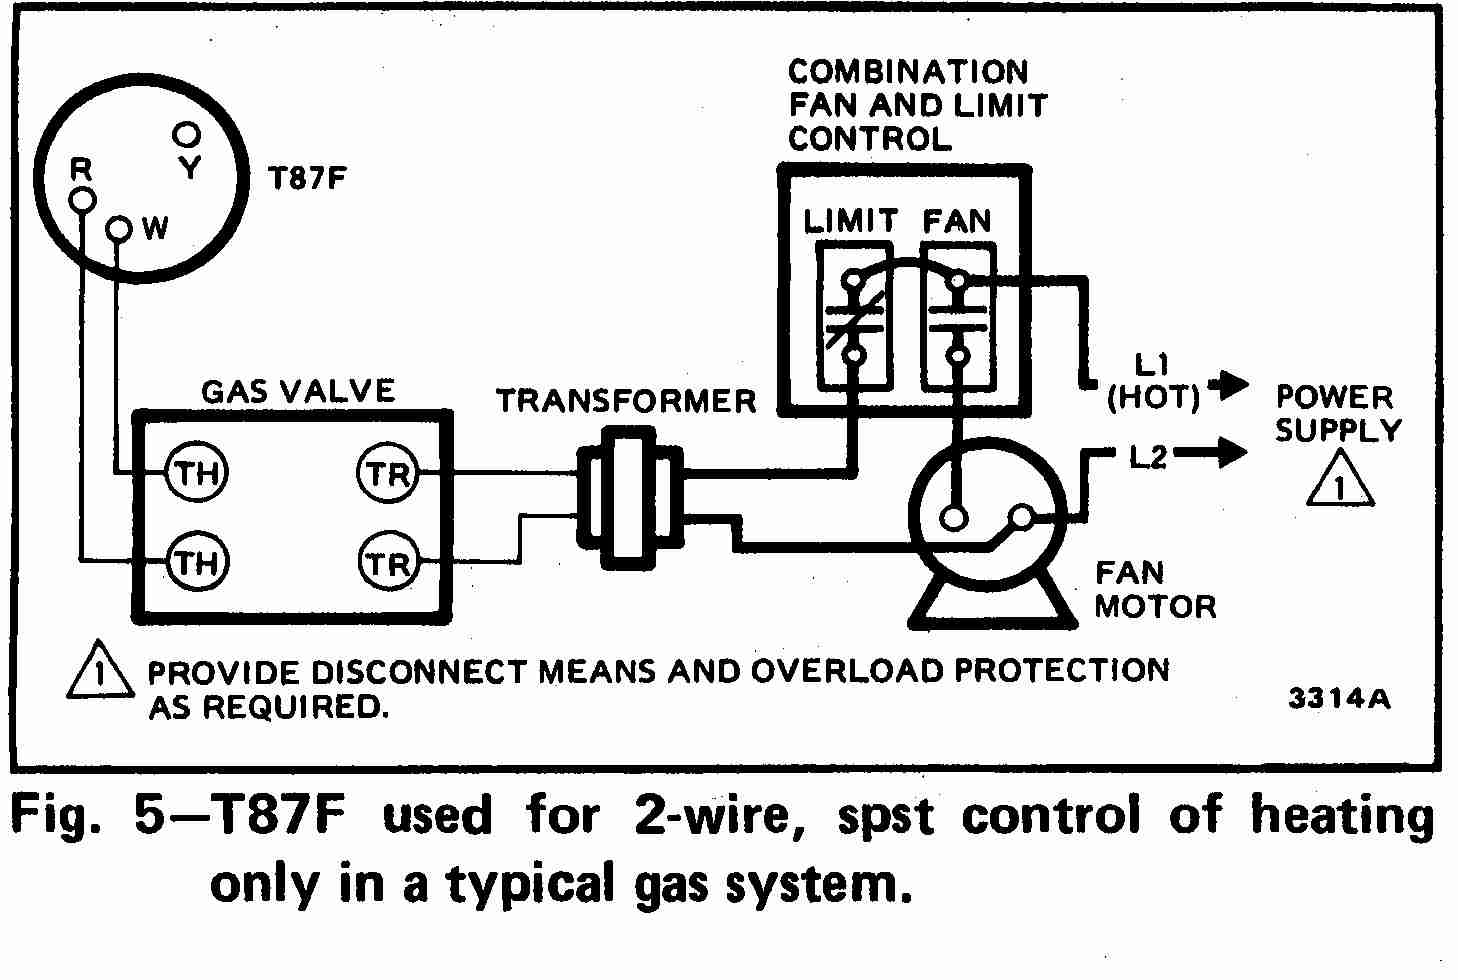 TT_T87F_0002_2Wg_DJF room thermostat wiring diagrams for hvac systems wiring diagram for central air thermostat at panicattacktreatment.co